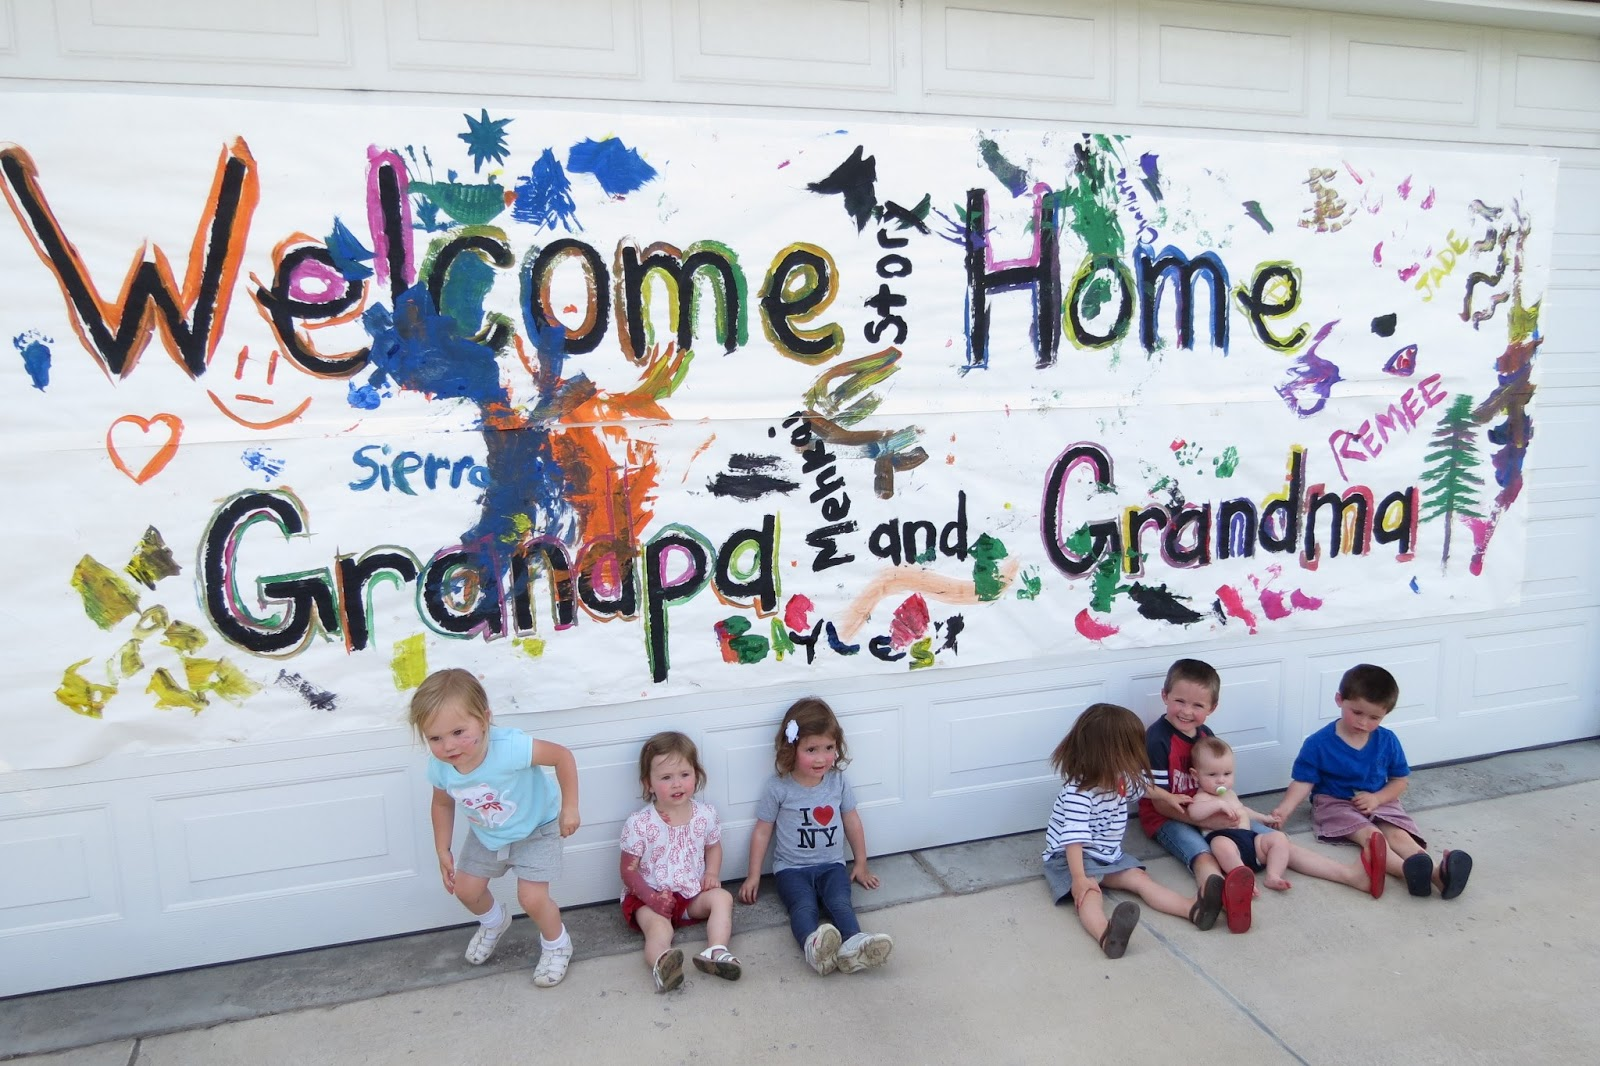 Welcome home grandma pictures.